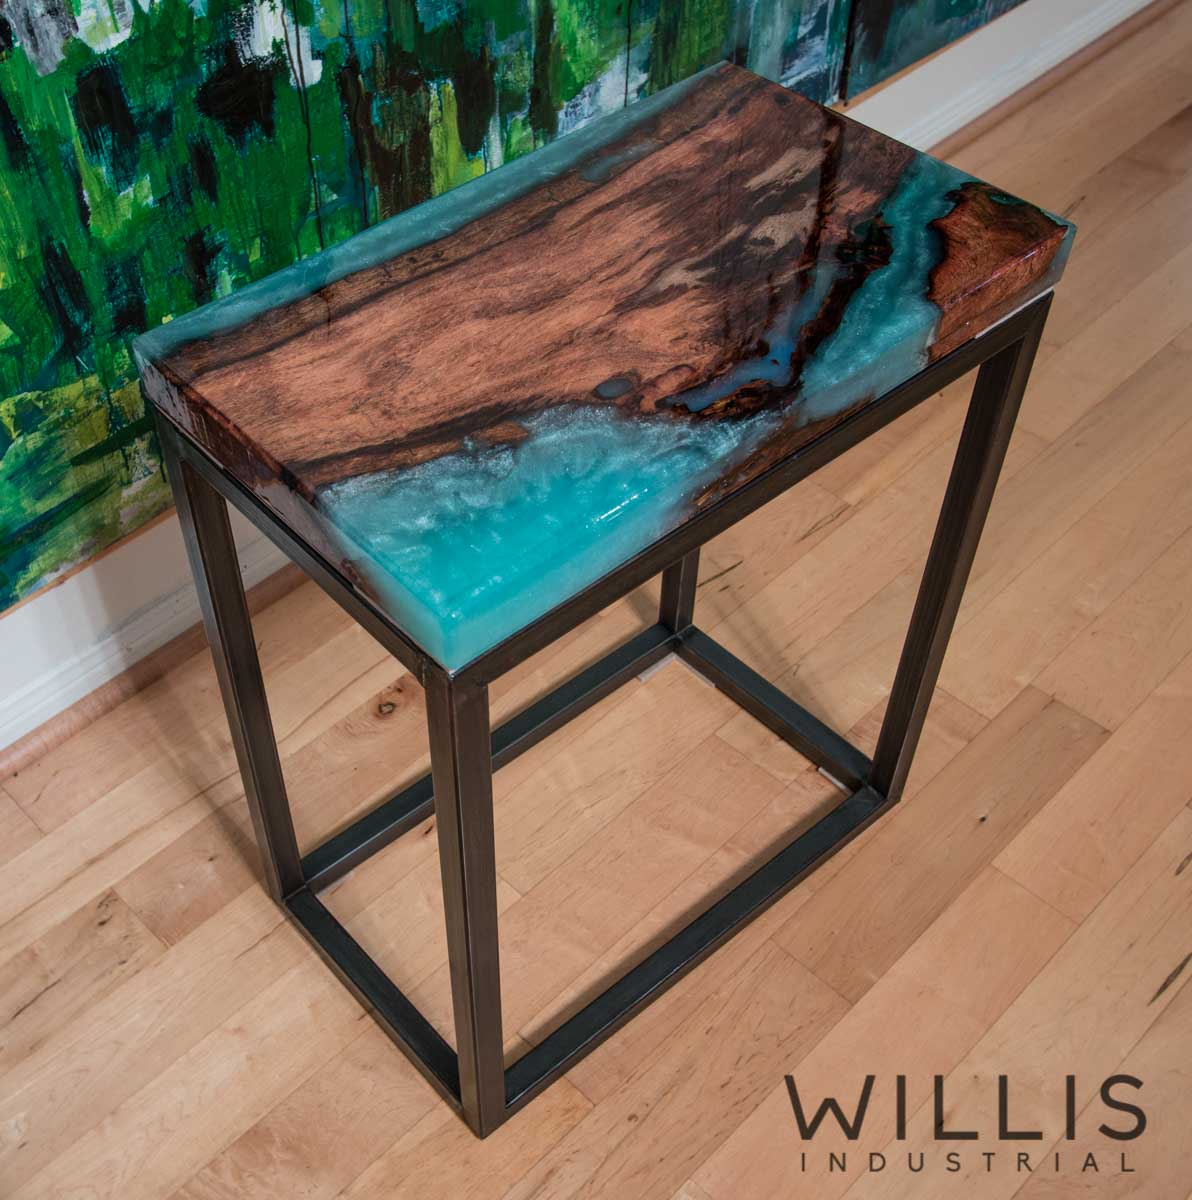 Willis Industrial Rustic Modern Furniture